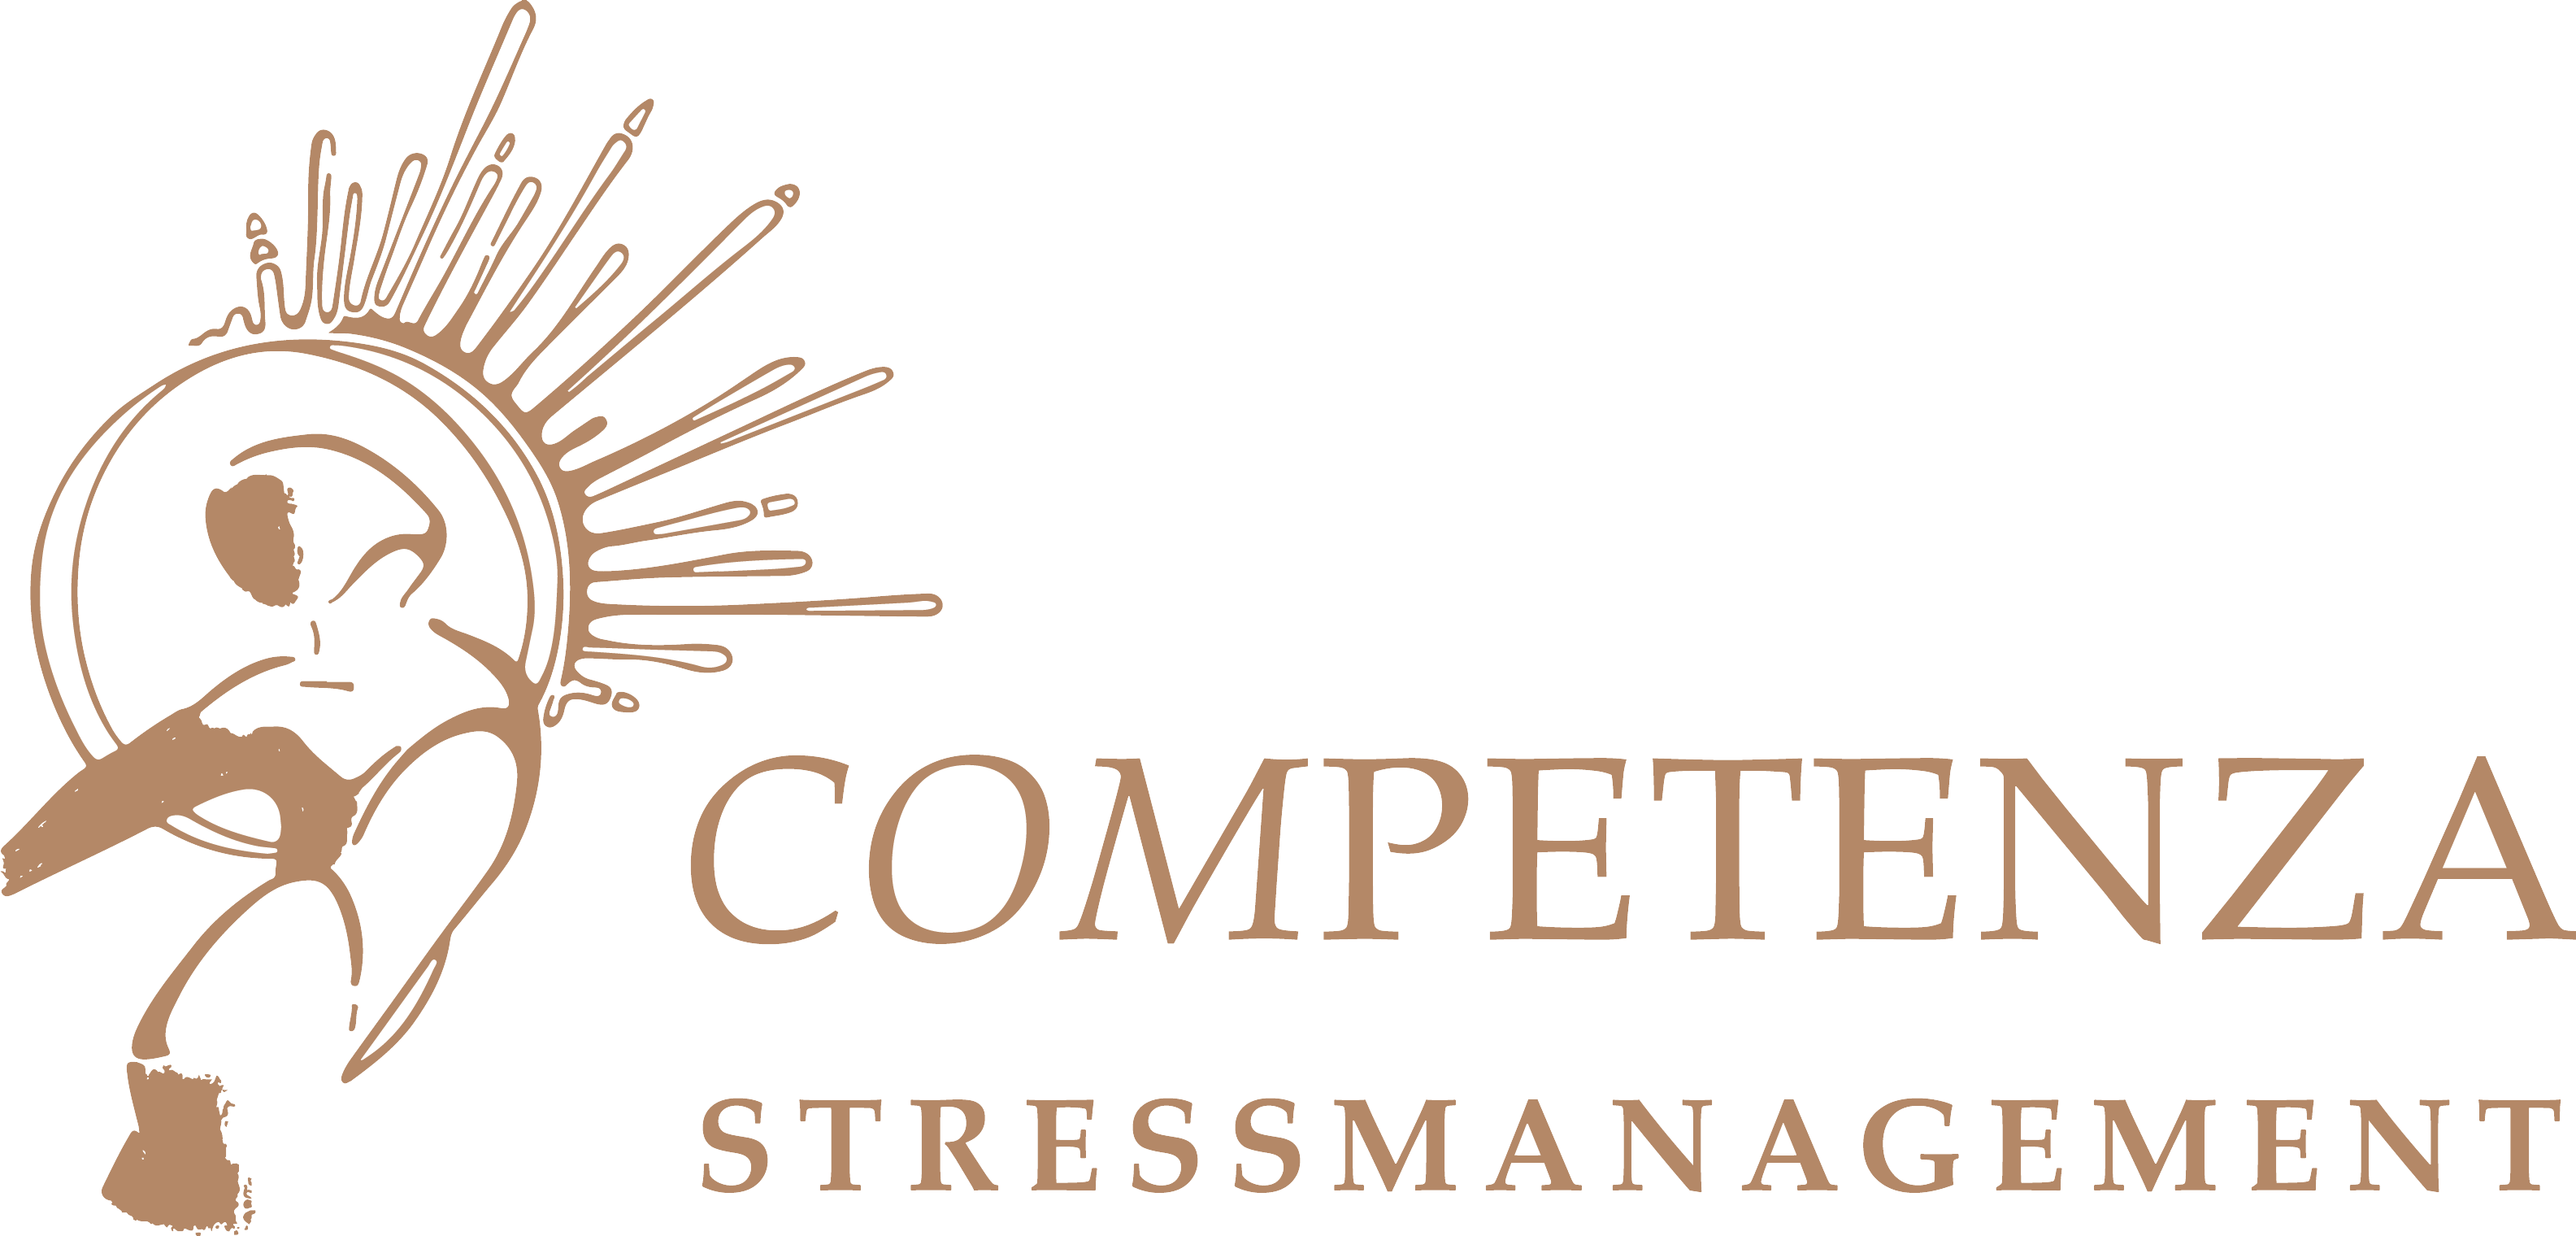 Competenza  Stressmanagement